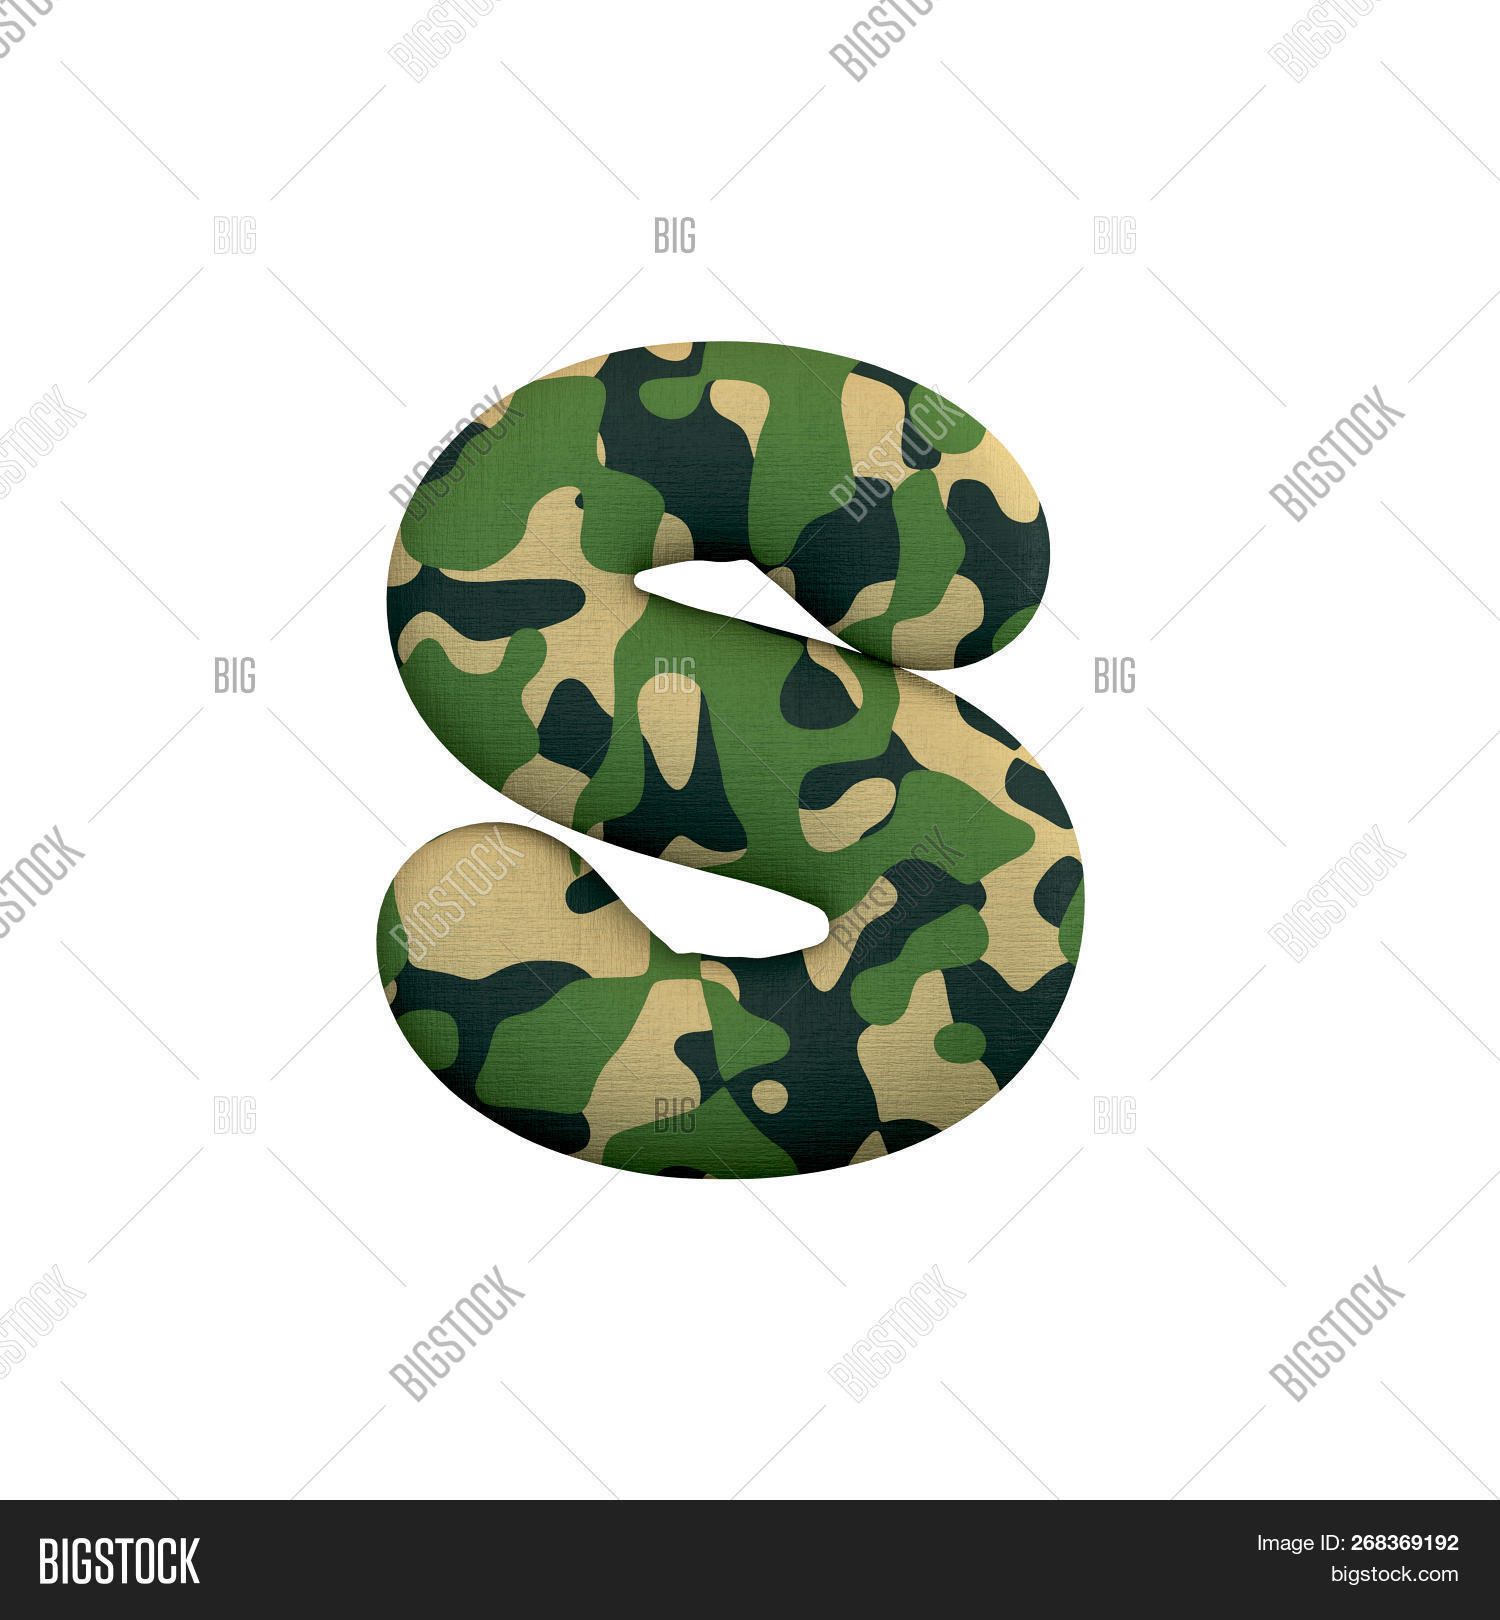 Army Letter S - Lower- Image & Photo (Free Trial) | Bigstock